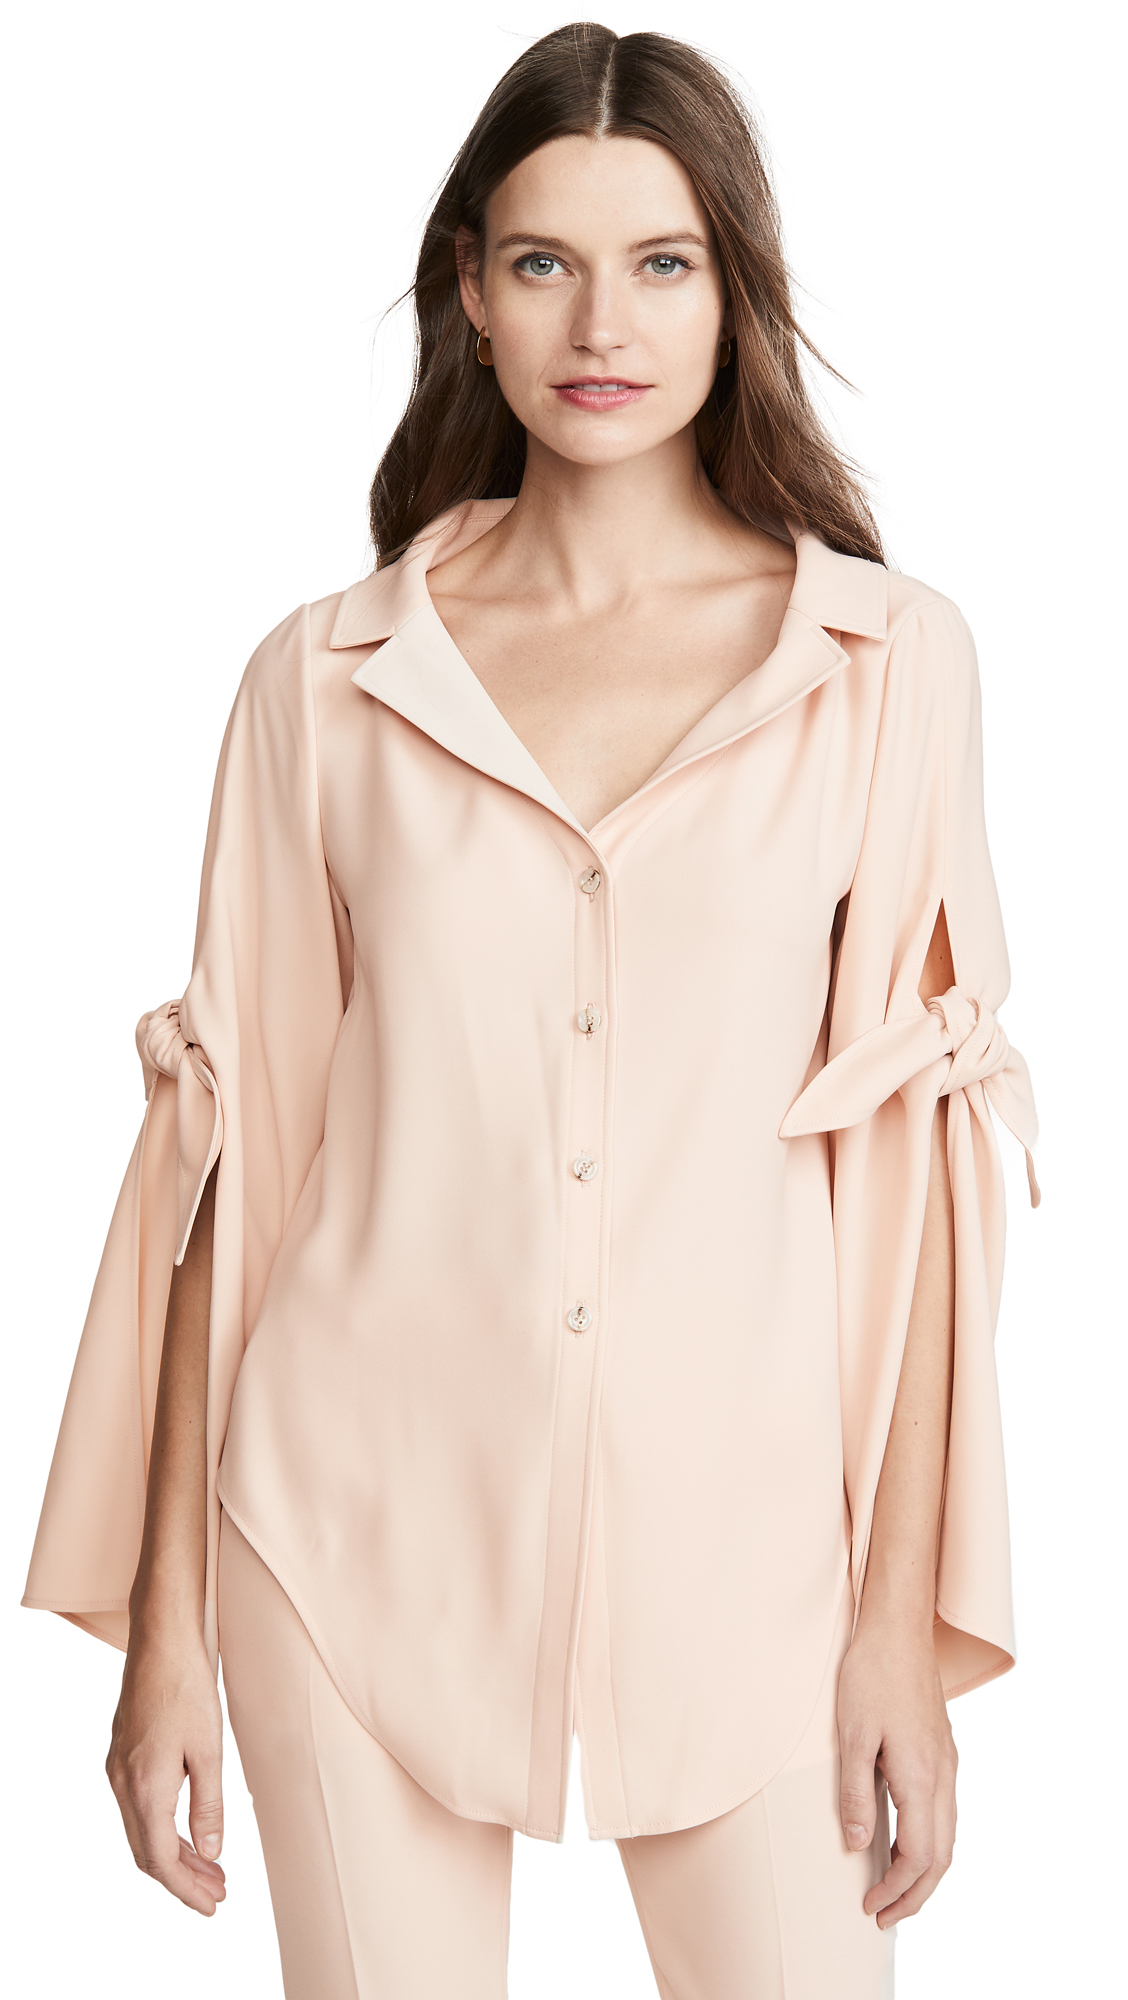 Adeam Long Sleeve Tie Blouse - 50% Off Sale